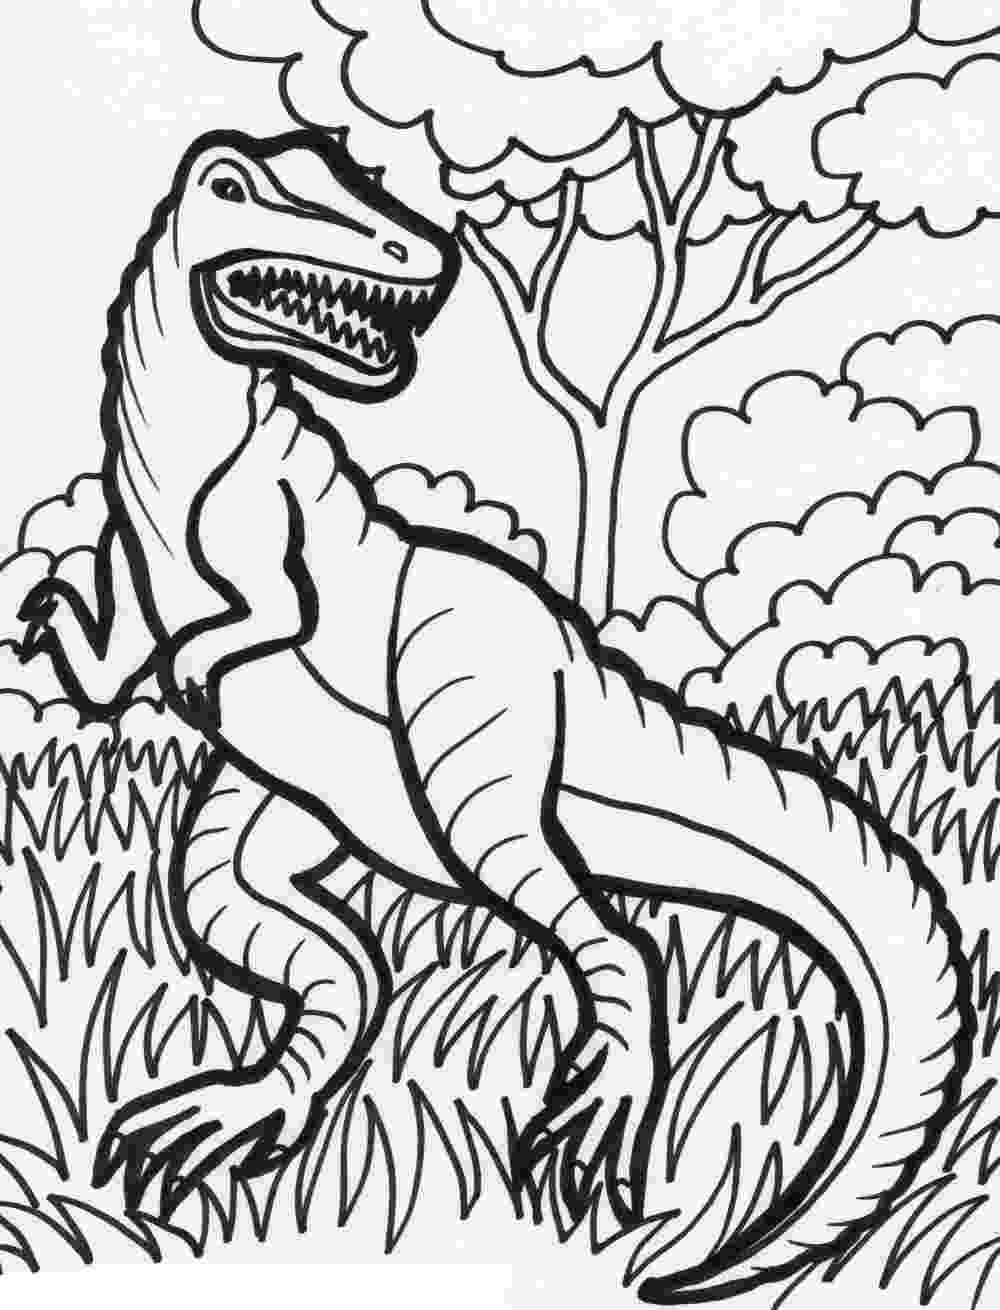 dinosaur colouring pages free printables free printable dinosaur coloring pages for kids pages colouring free dinosaur printables